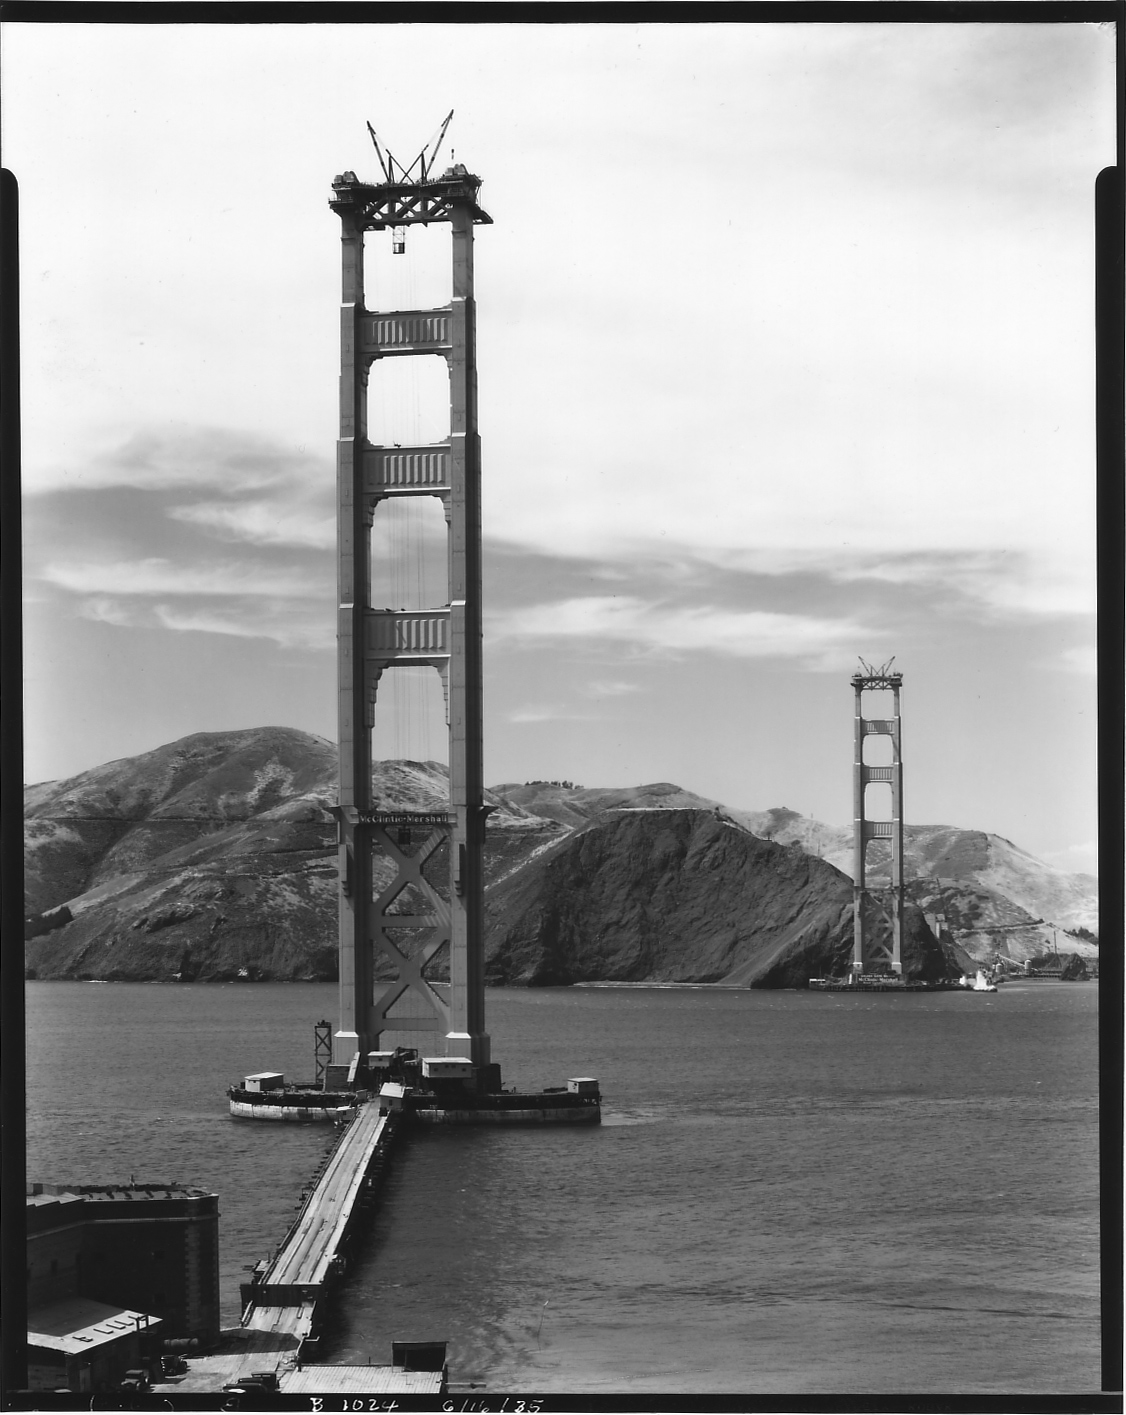 construction Golden Gate Bridge 10 La construction du Golden Gate Bridge